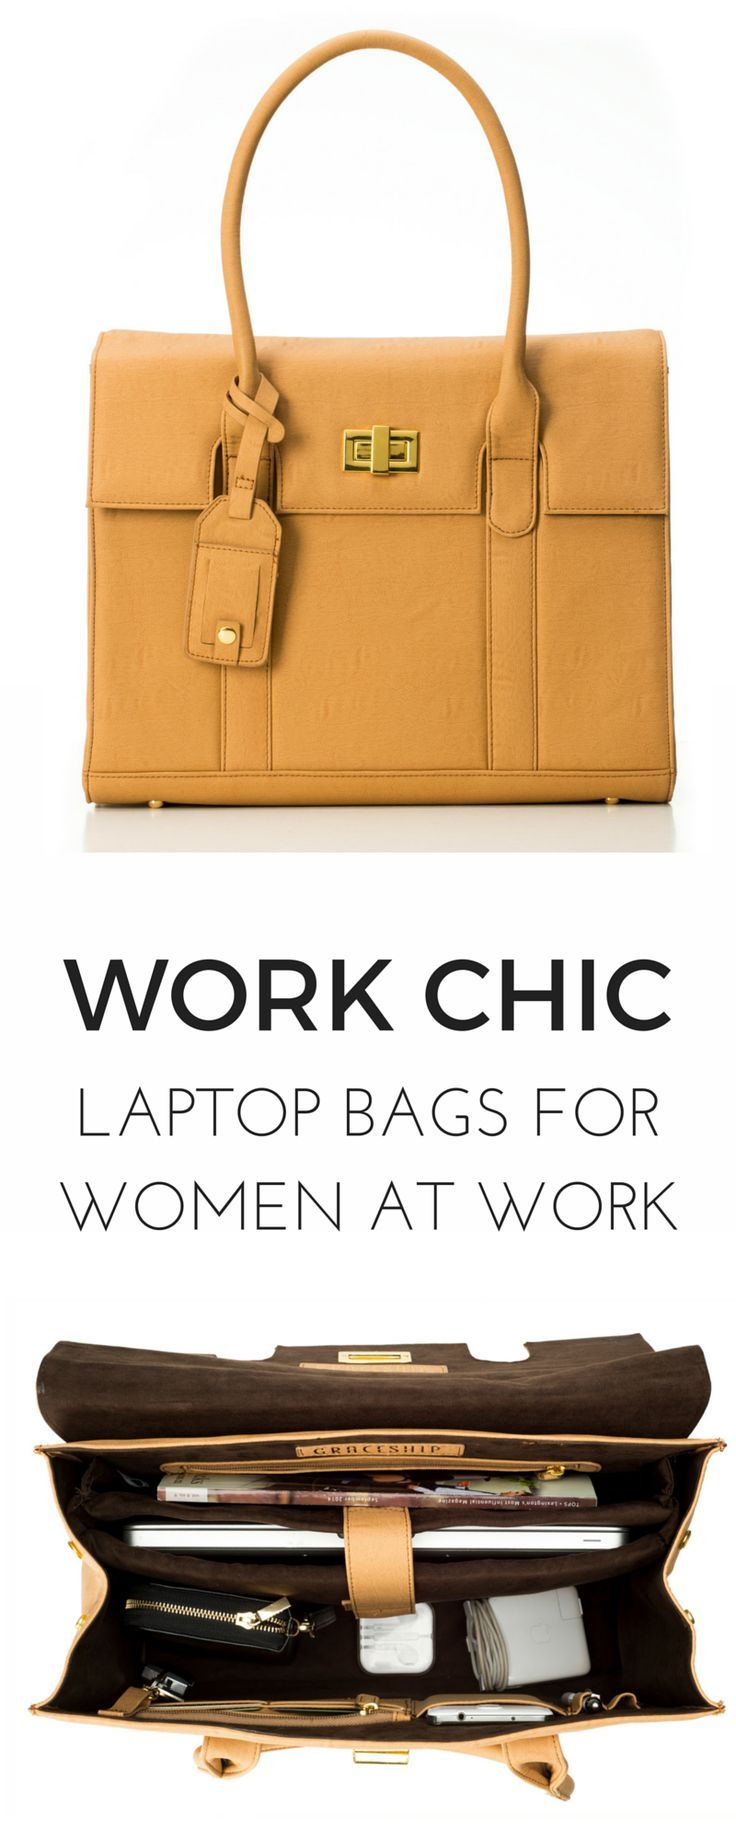 The perfect laptop bags that look like purses! This tote is a must-have for women that need to be organized on-the-go.